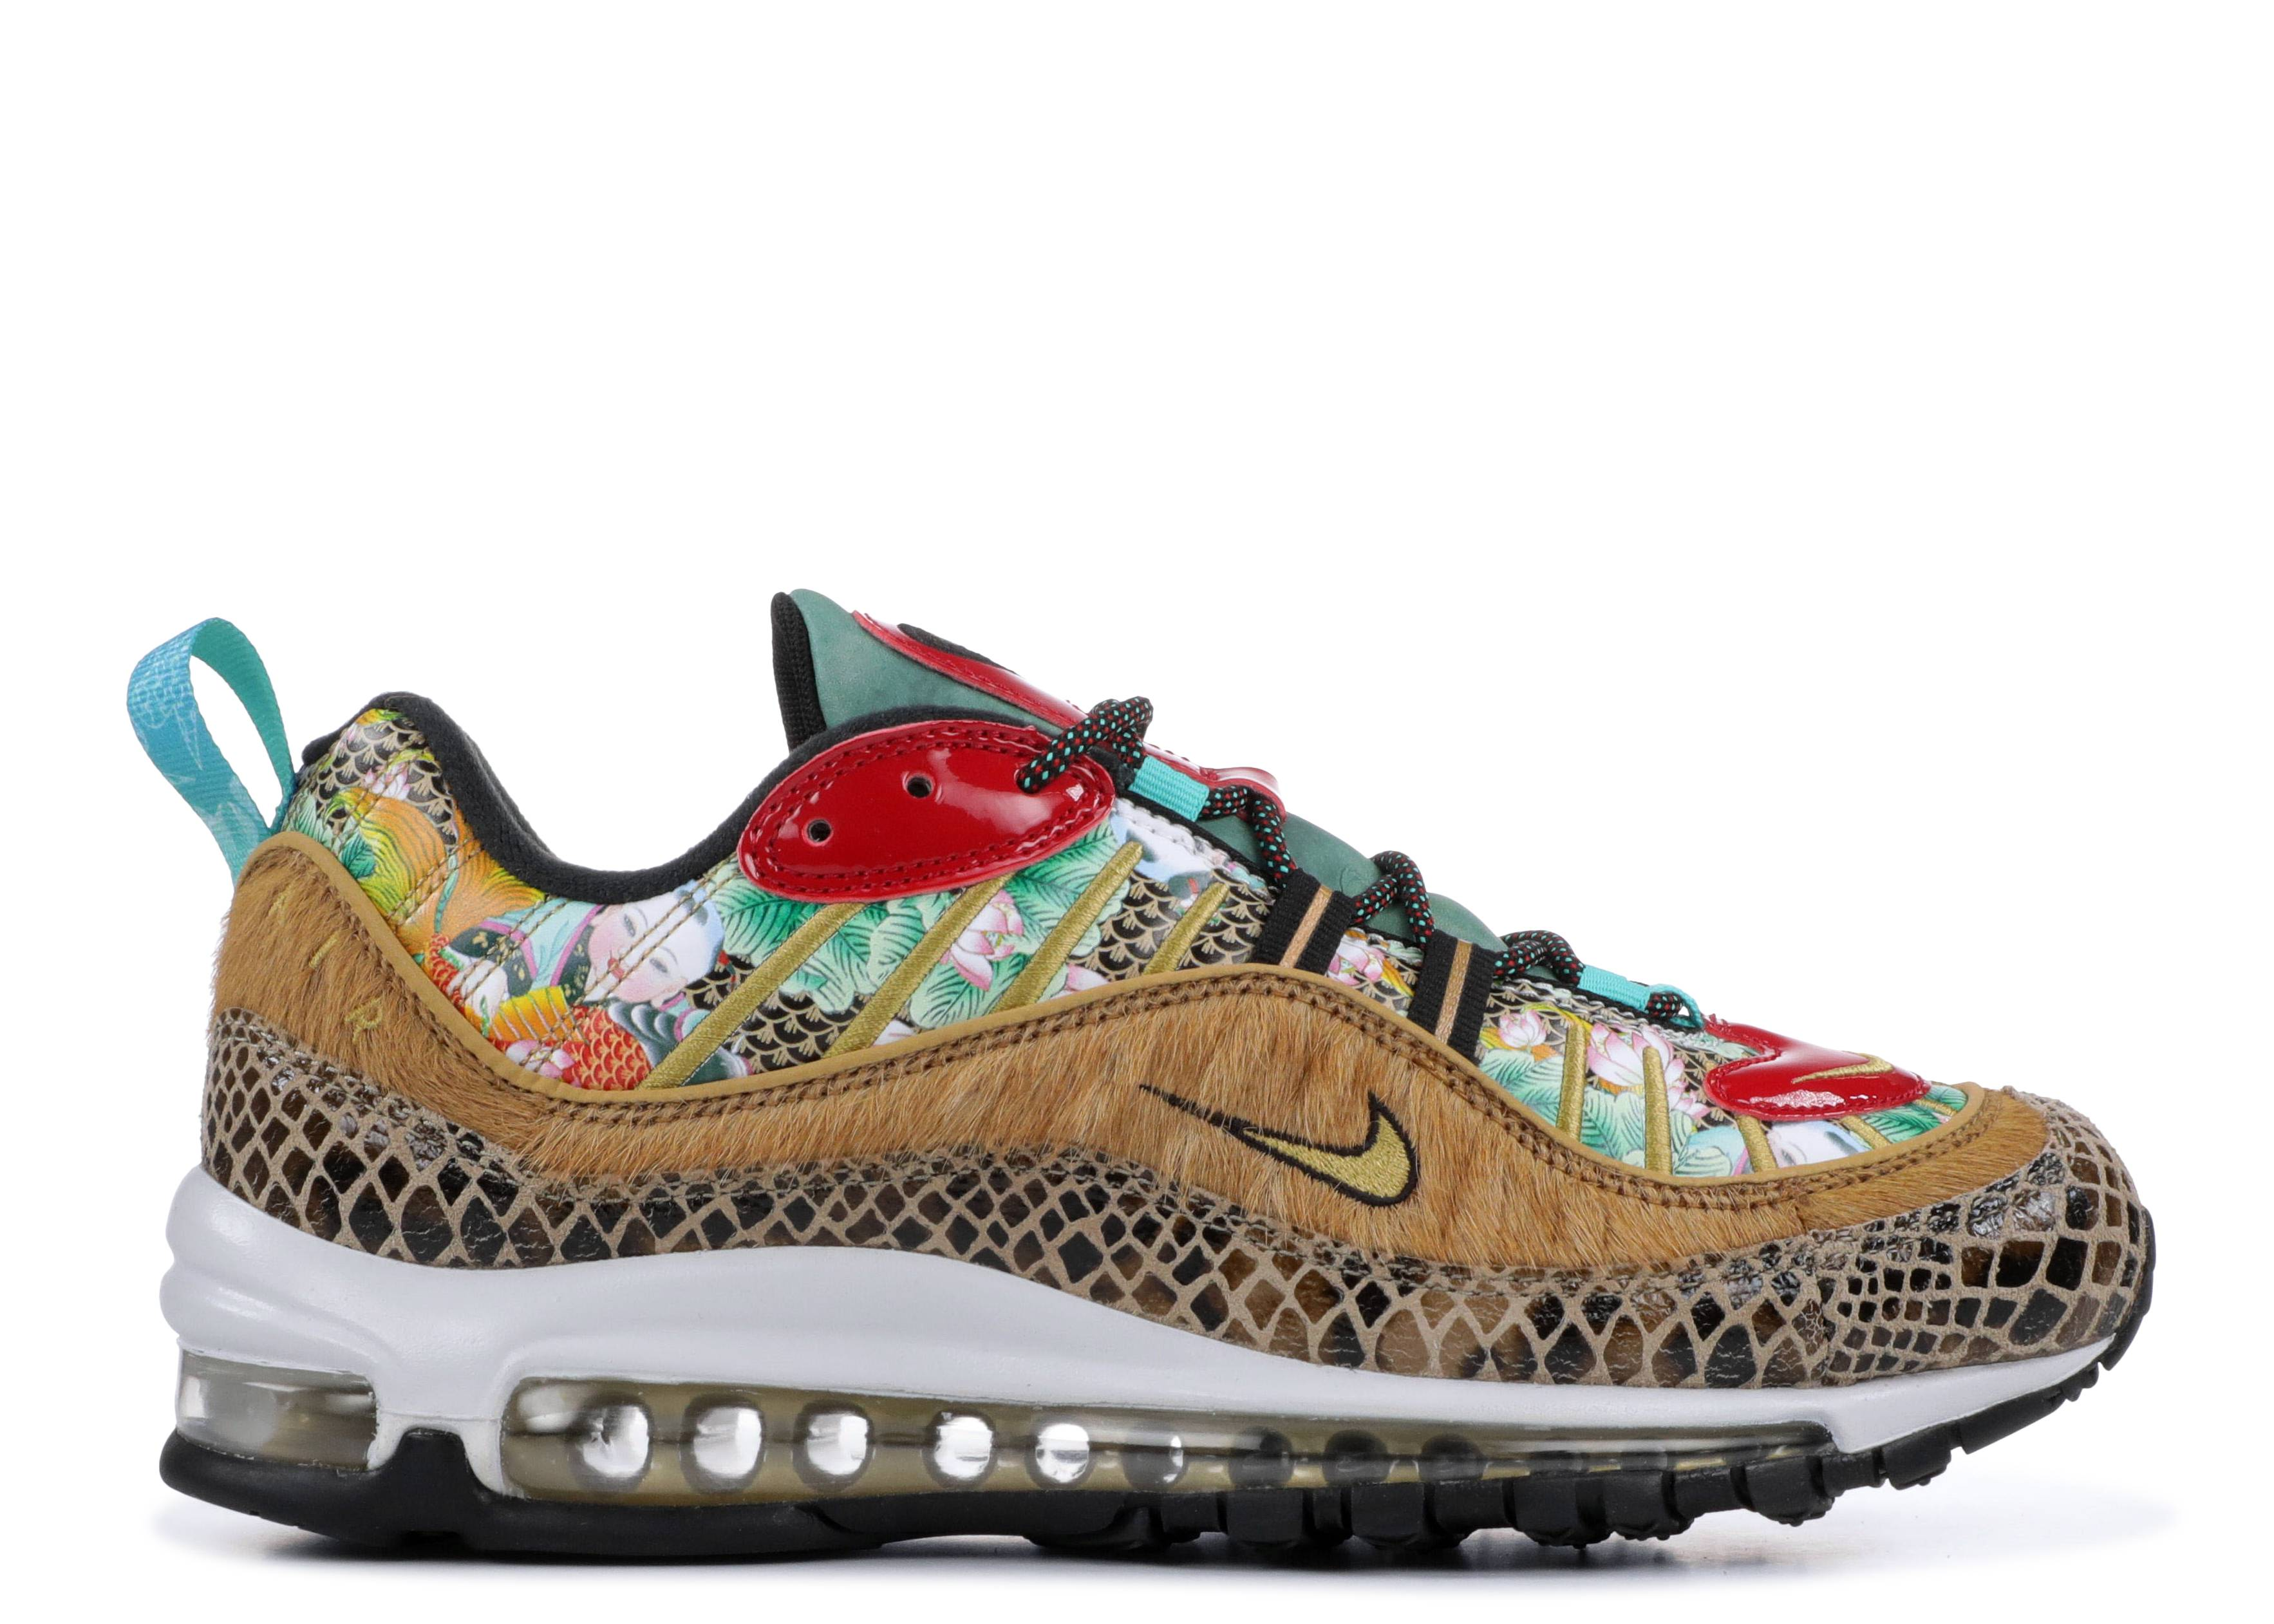 f5a33f5342 nike air max 98 uk white gold; air max 98 nike bv6649 708 wheat metallic  gold black flight club